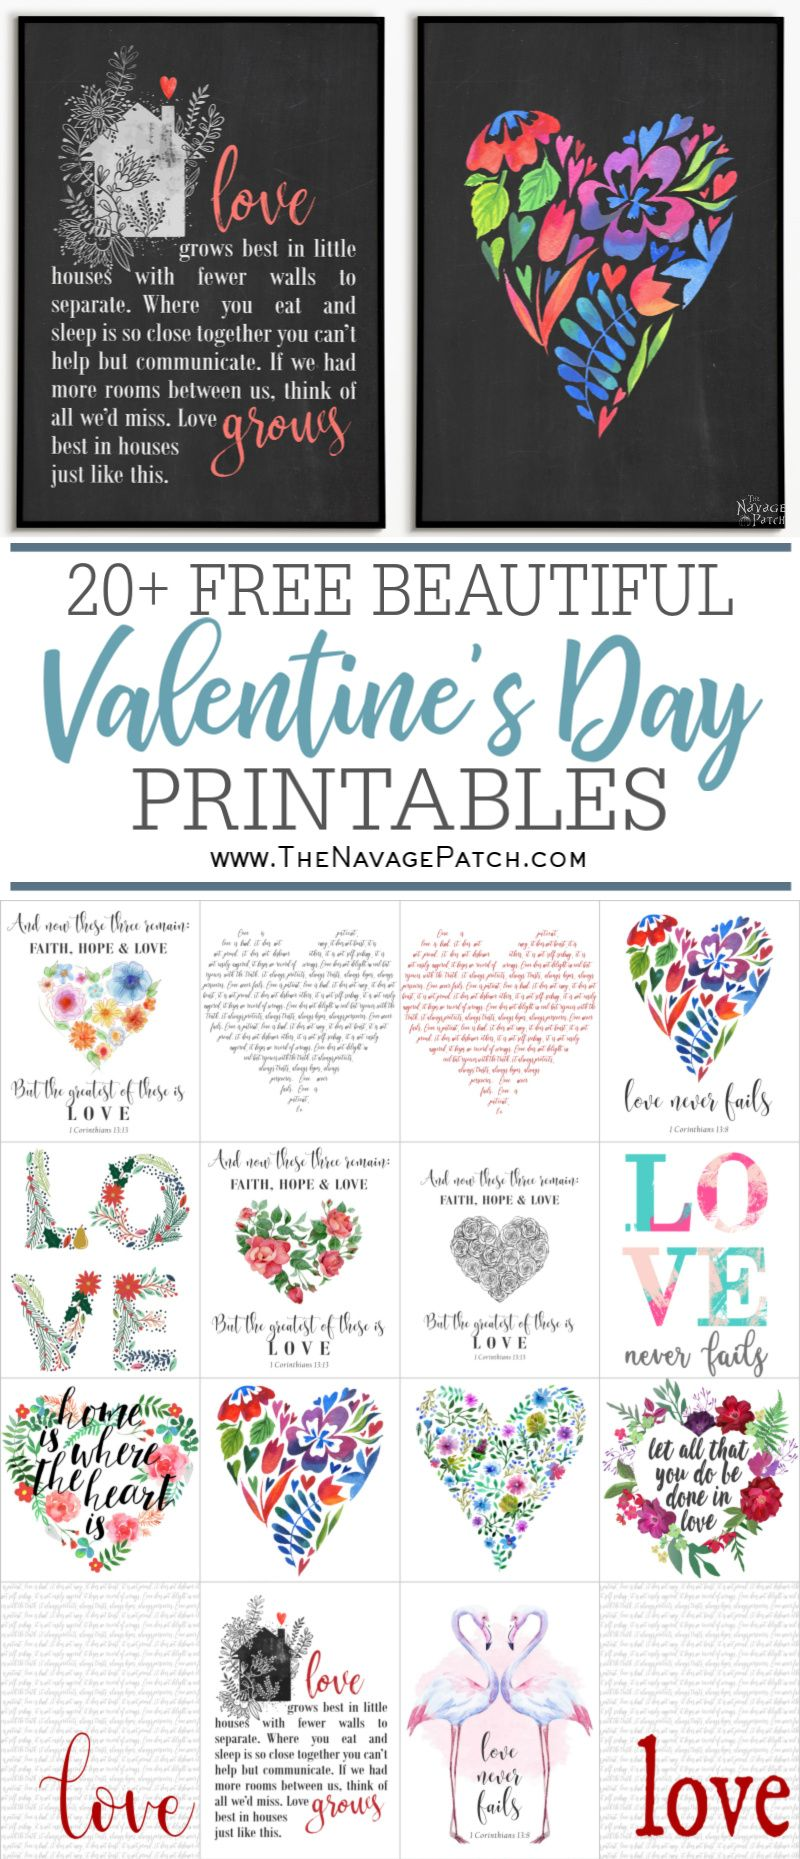 Free Valentine's Printables pin image